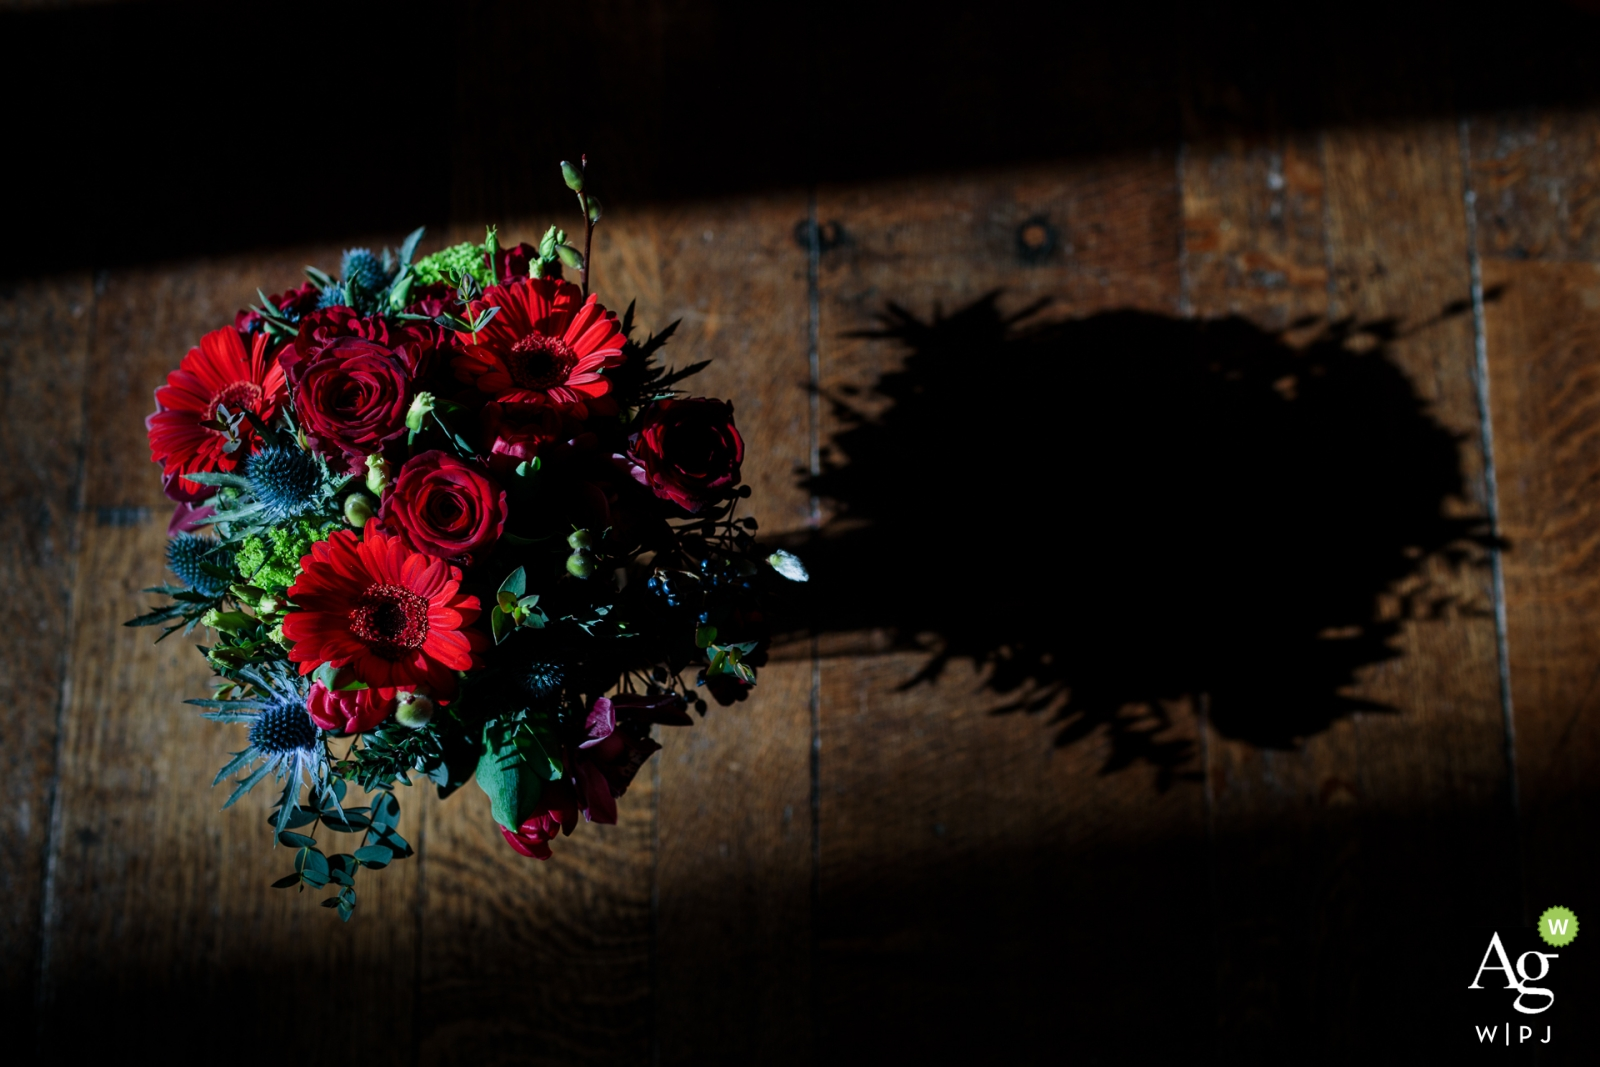 Kent artistic wedding photography details of the flowers